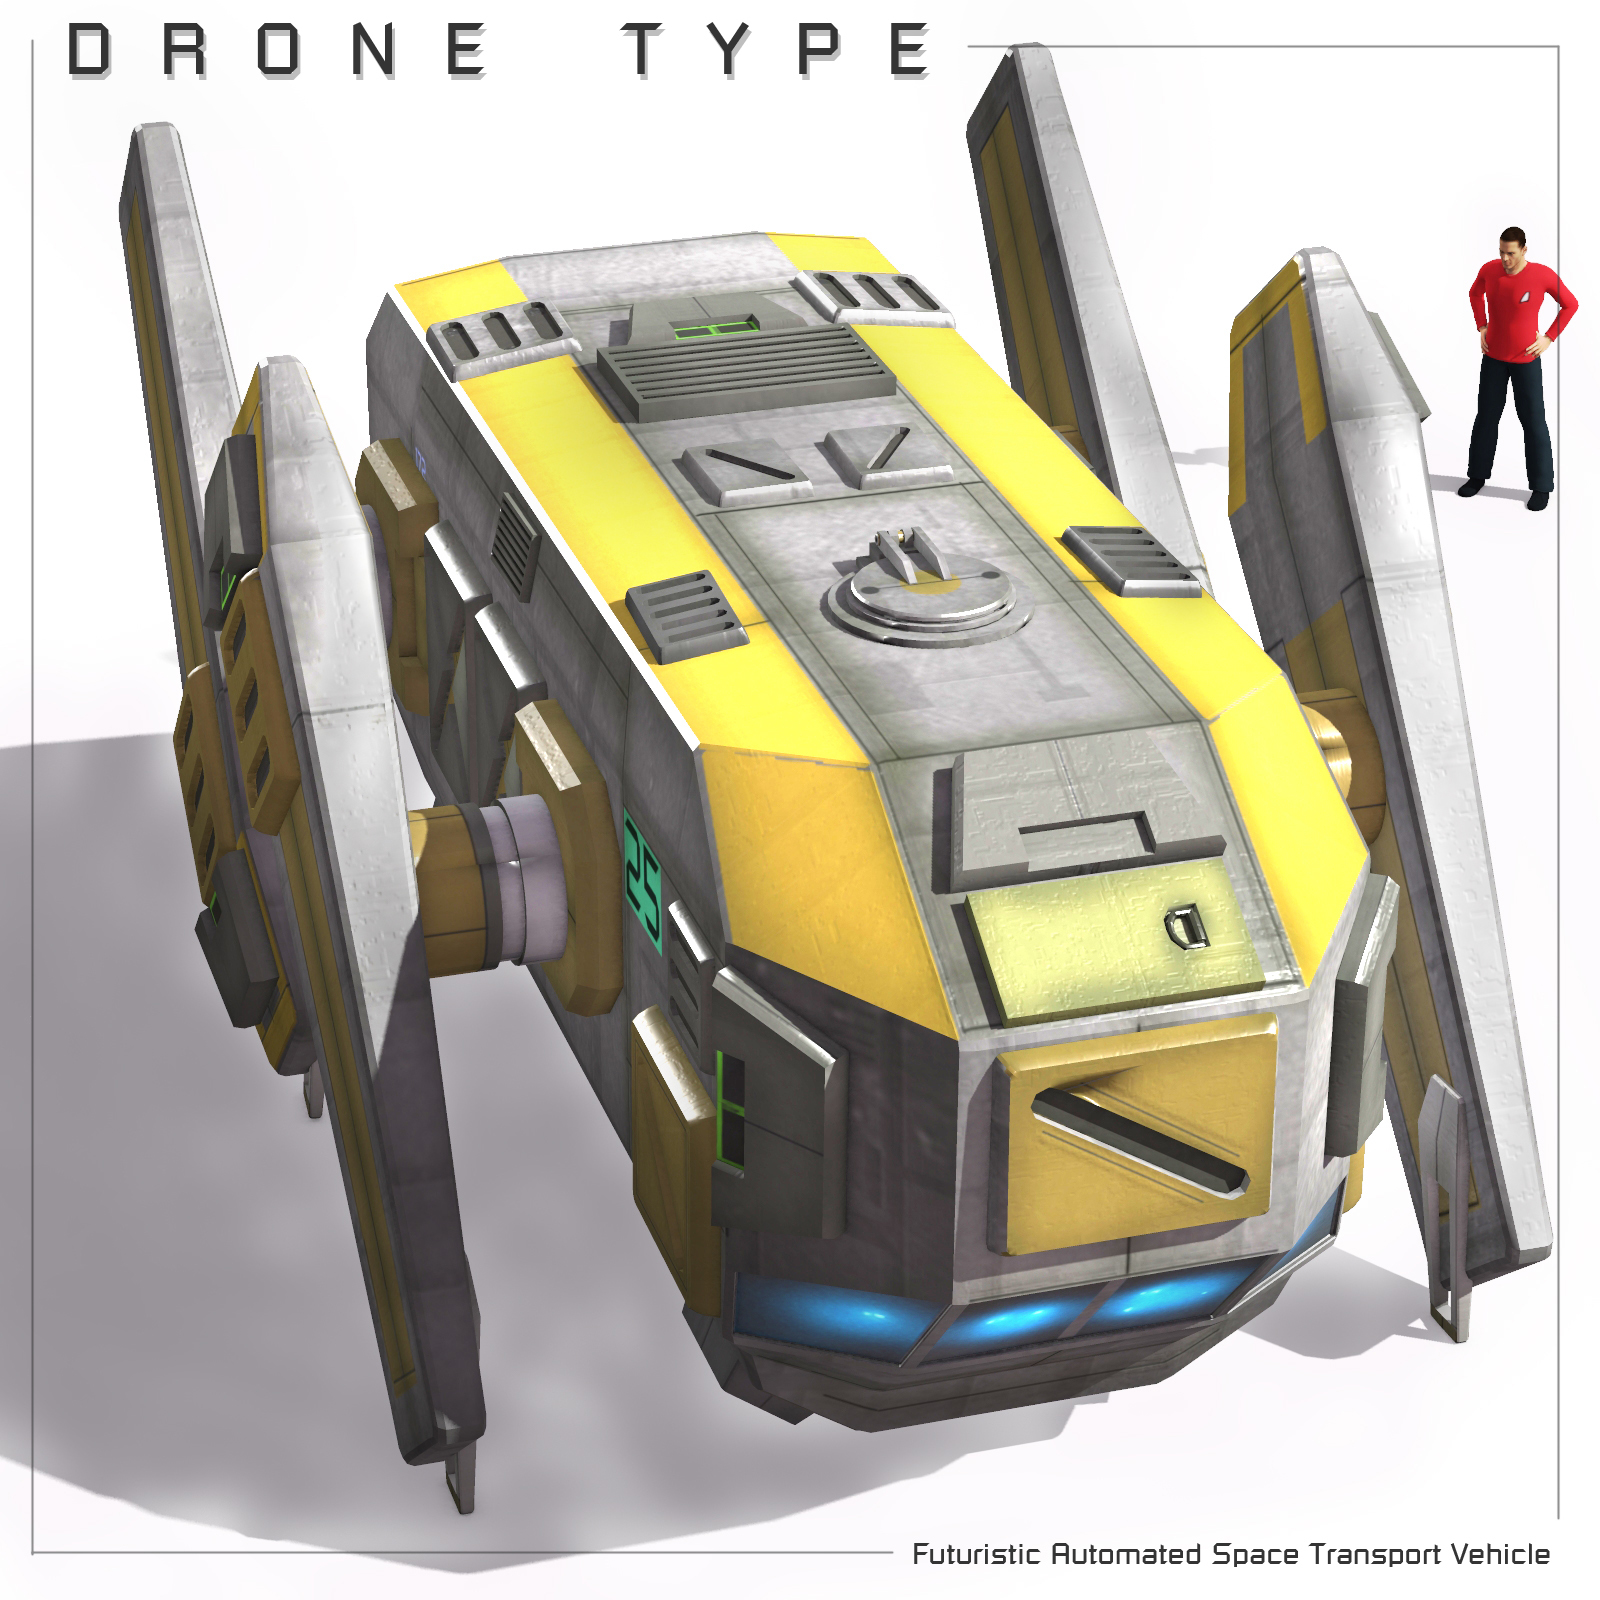 Drone Type